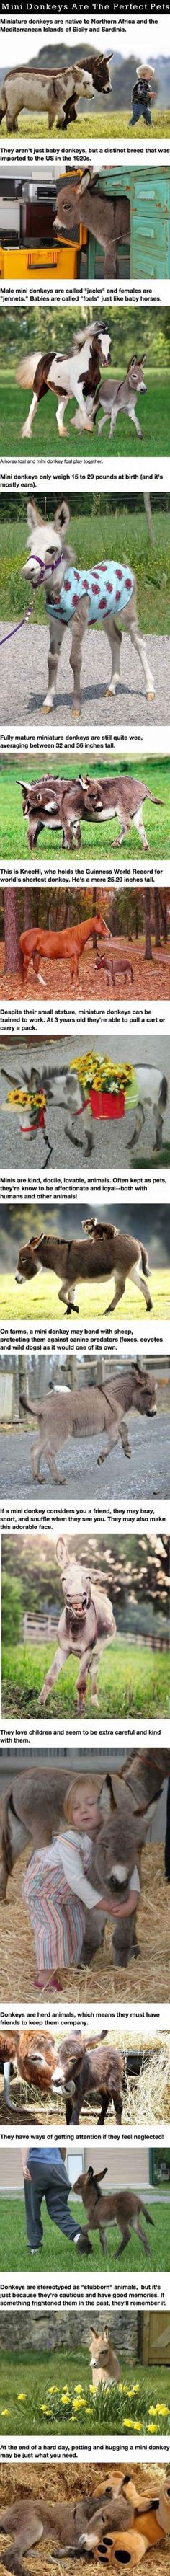 Mini Donkeys Are The Perfect Pets cute animals kids adorable kid story animal pets baby animals children stories funny animals heart warming